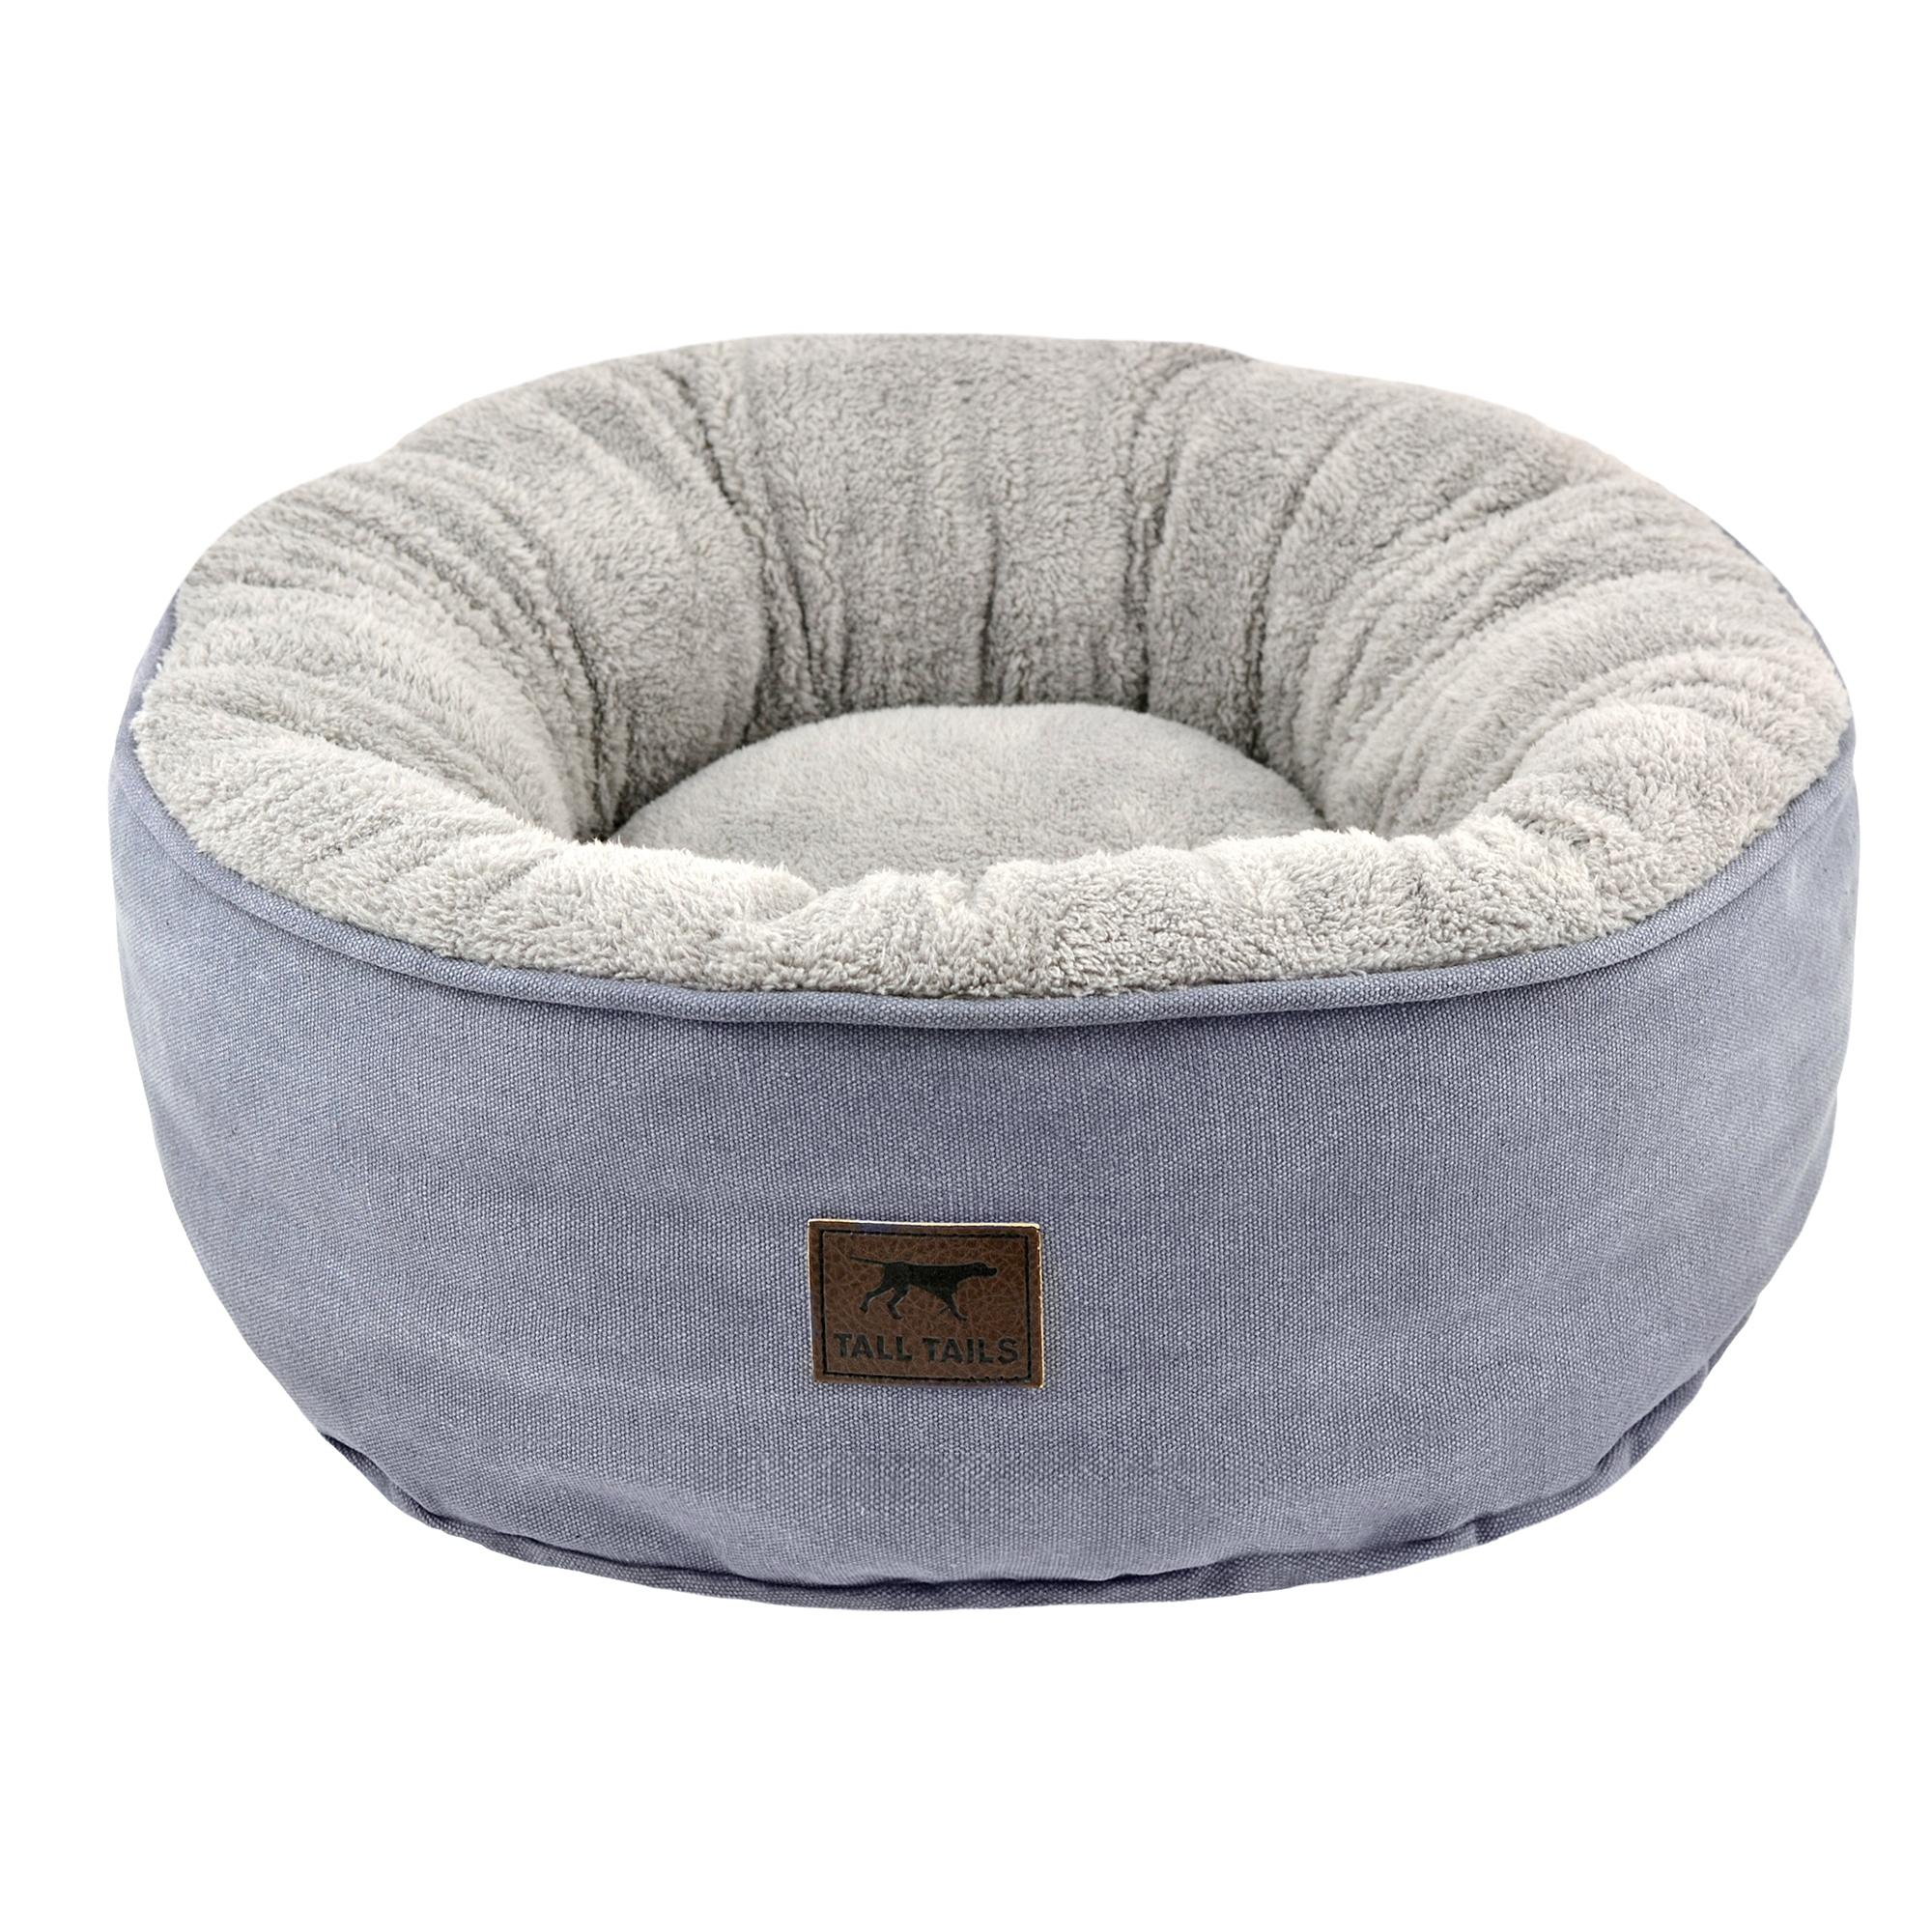 Tall Tails Dream Chaser Donut Dog Bed, Charcoal